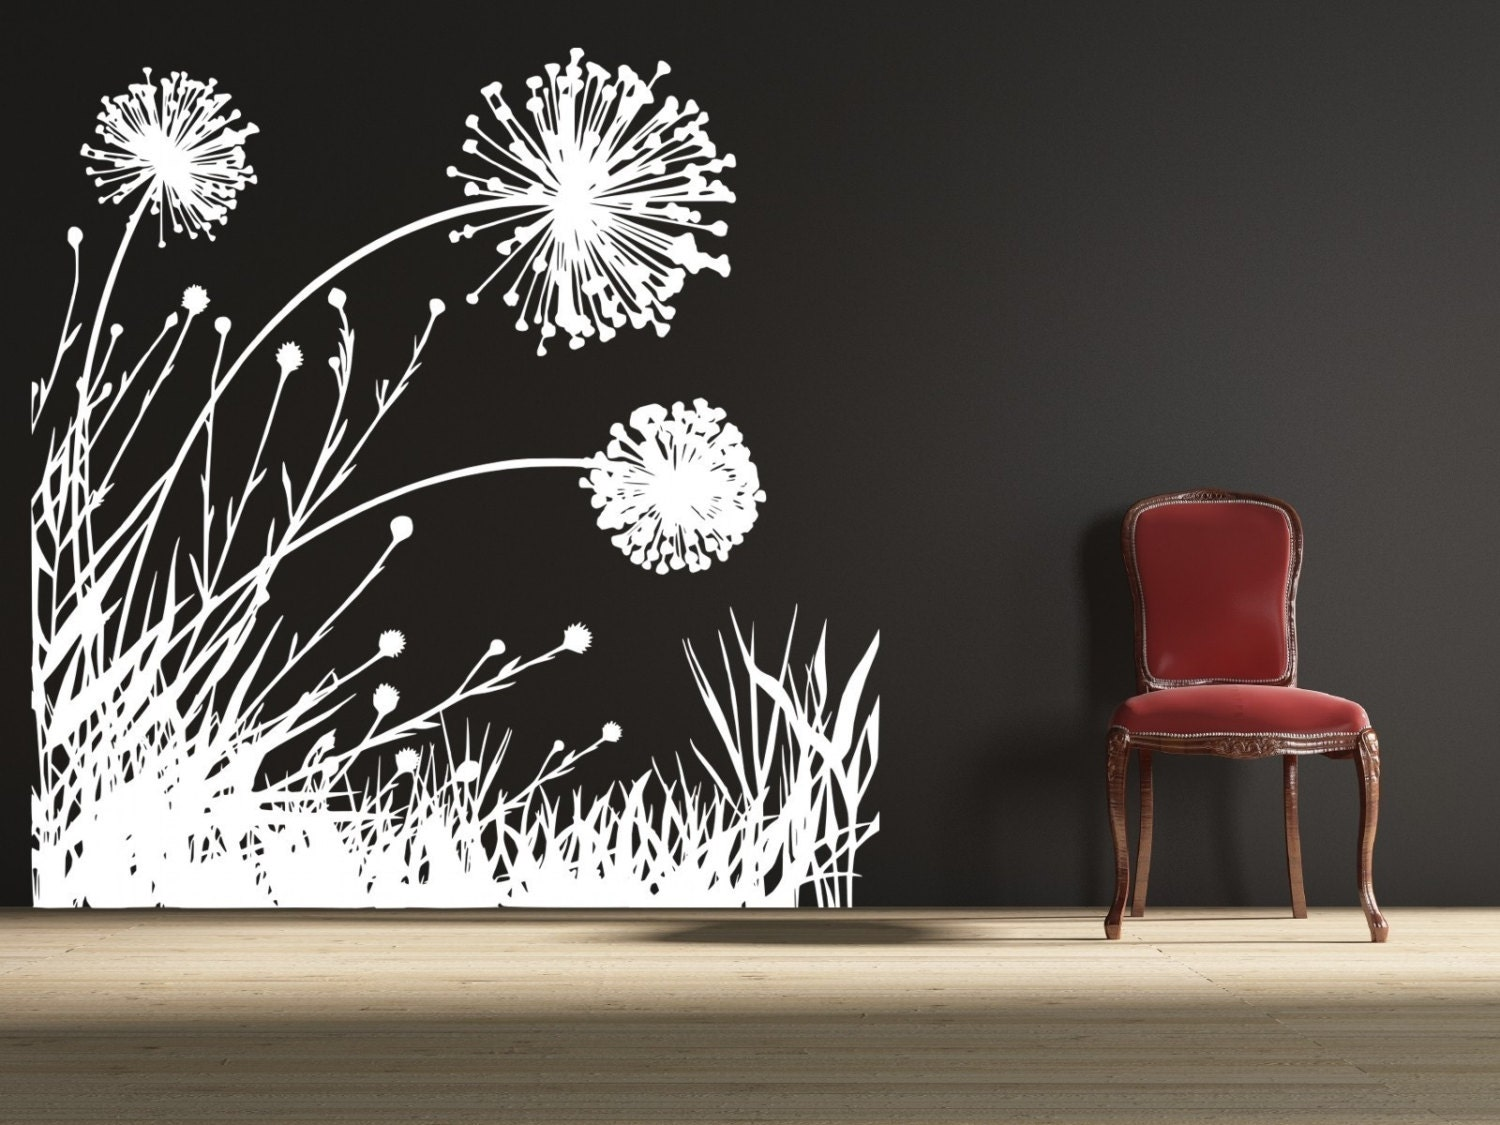 dandelion field 2 uber decals wall decal vinyl decor art